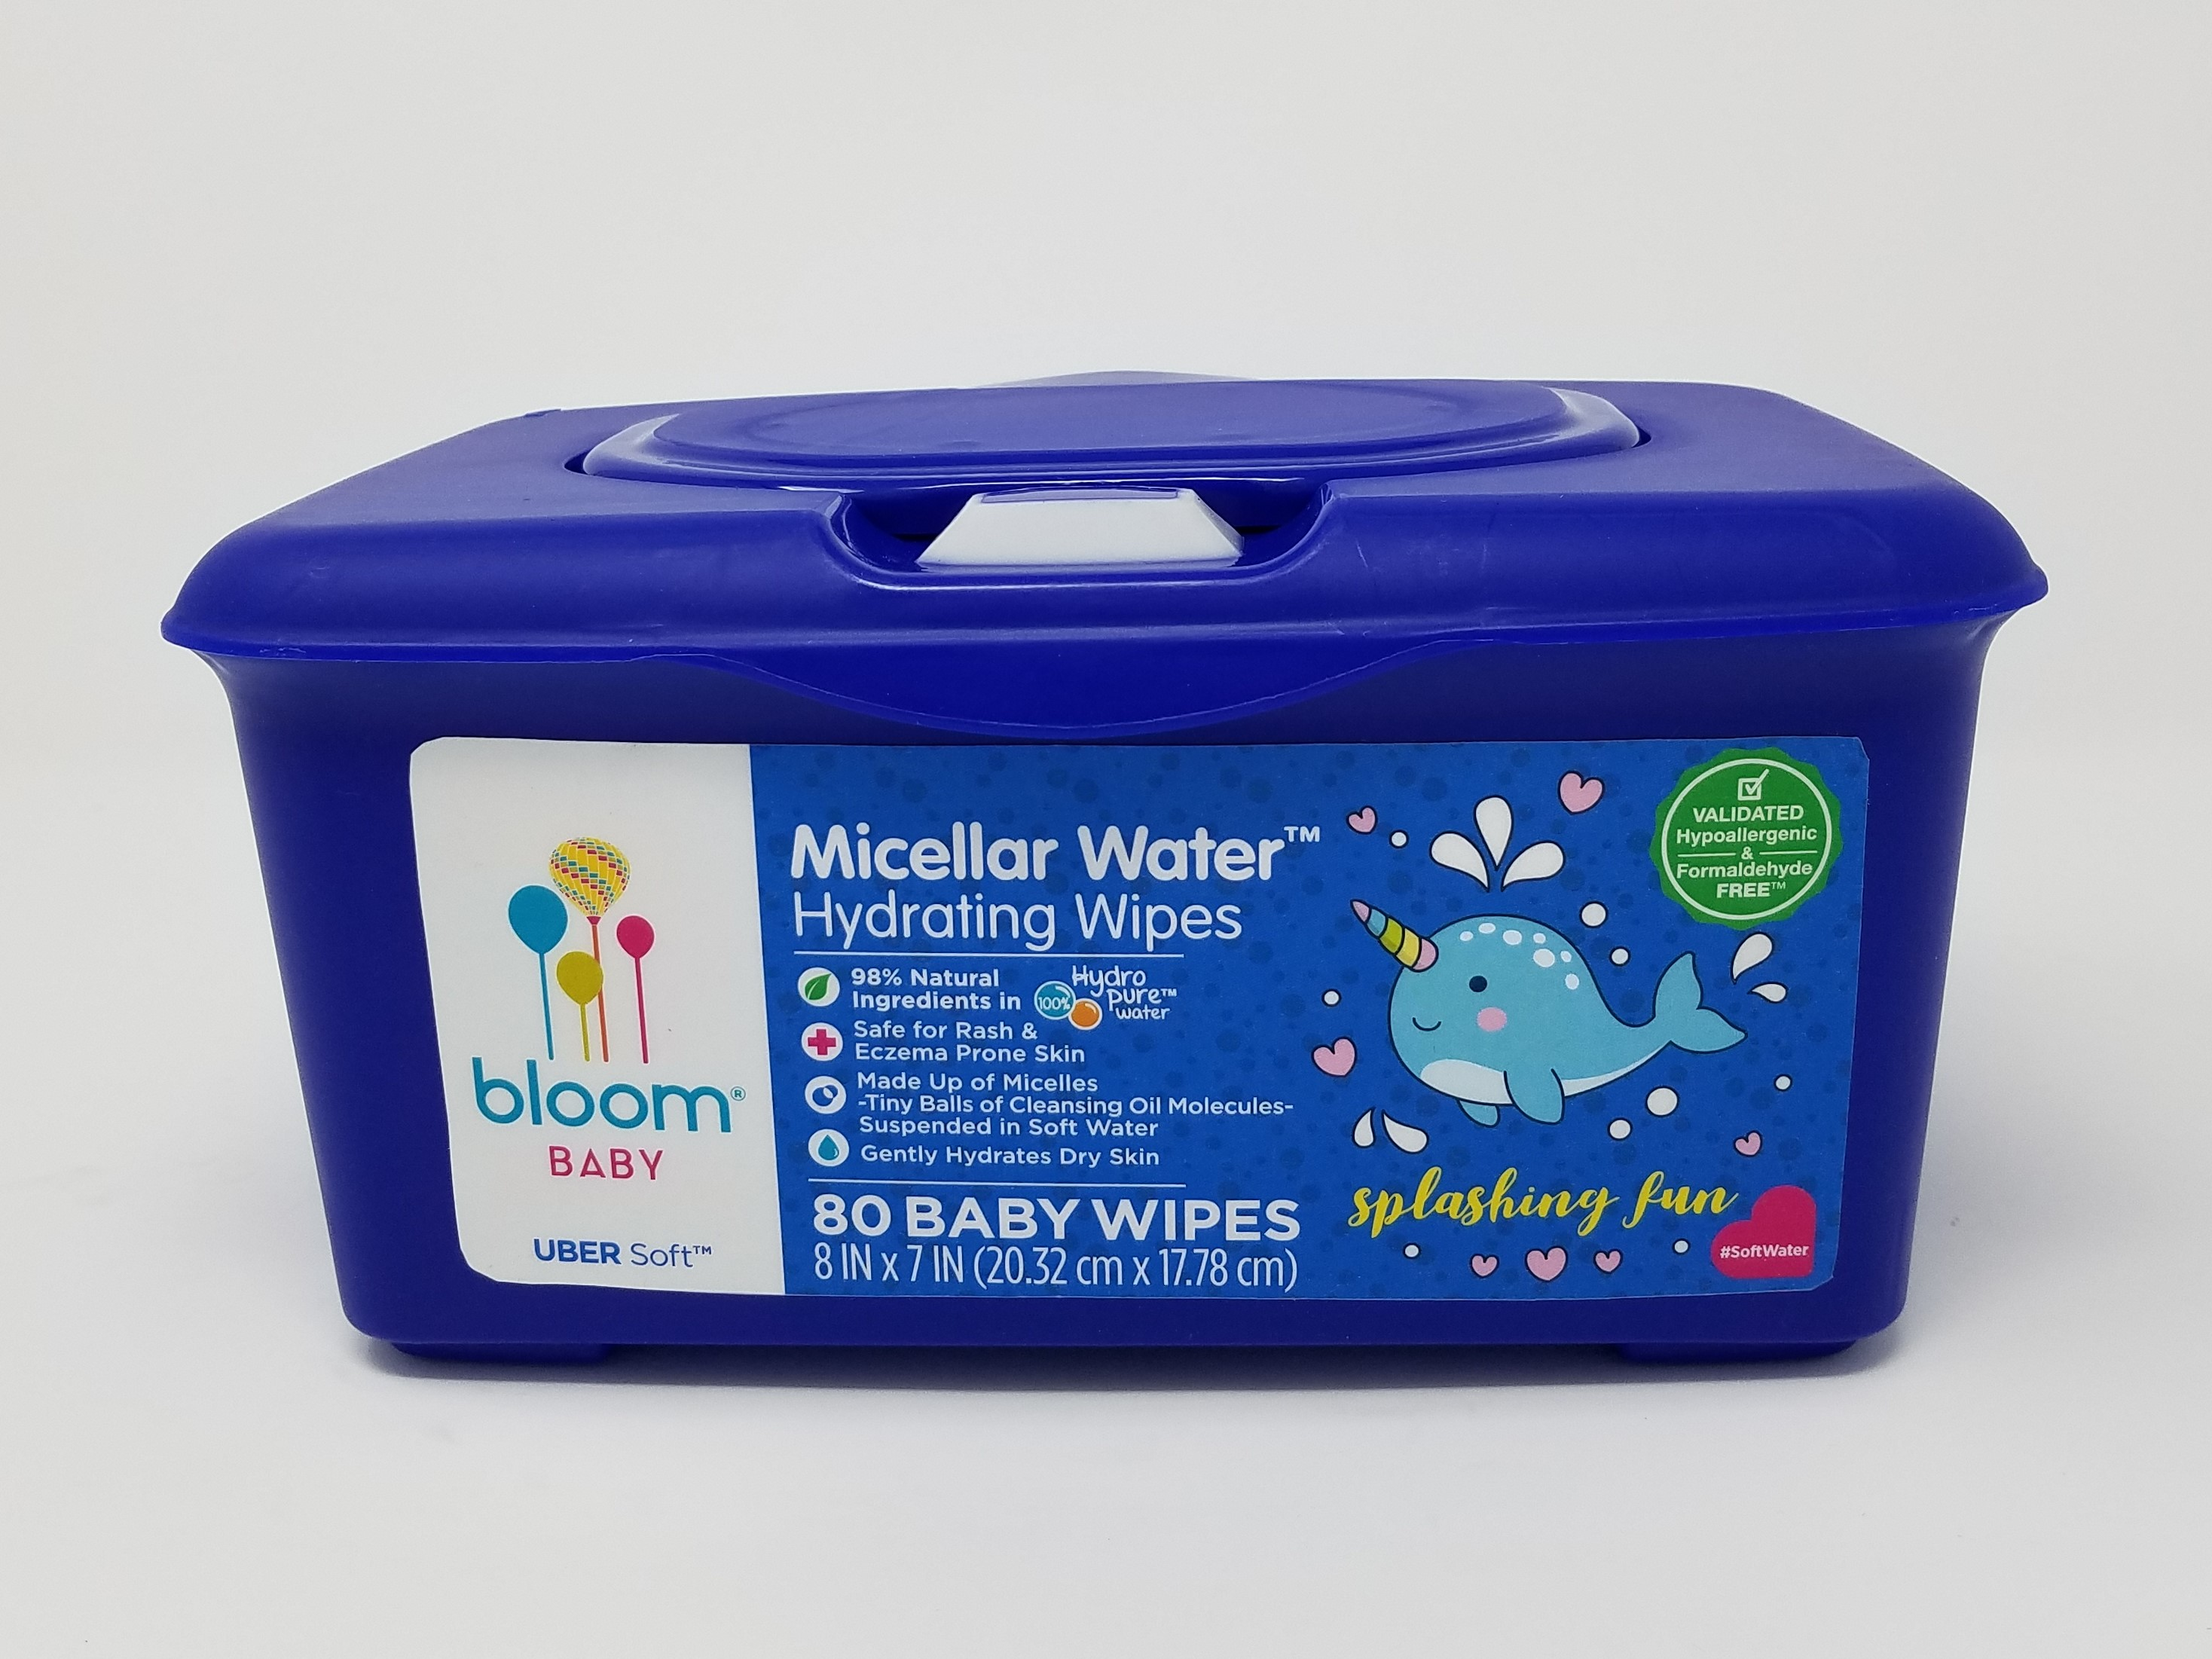 Bloom Baby Micellar Wipes